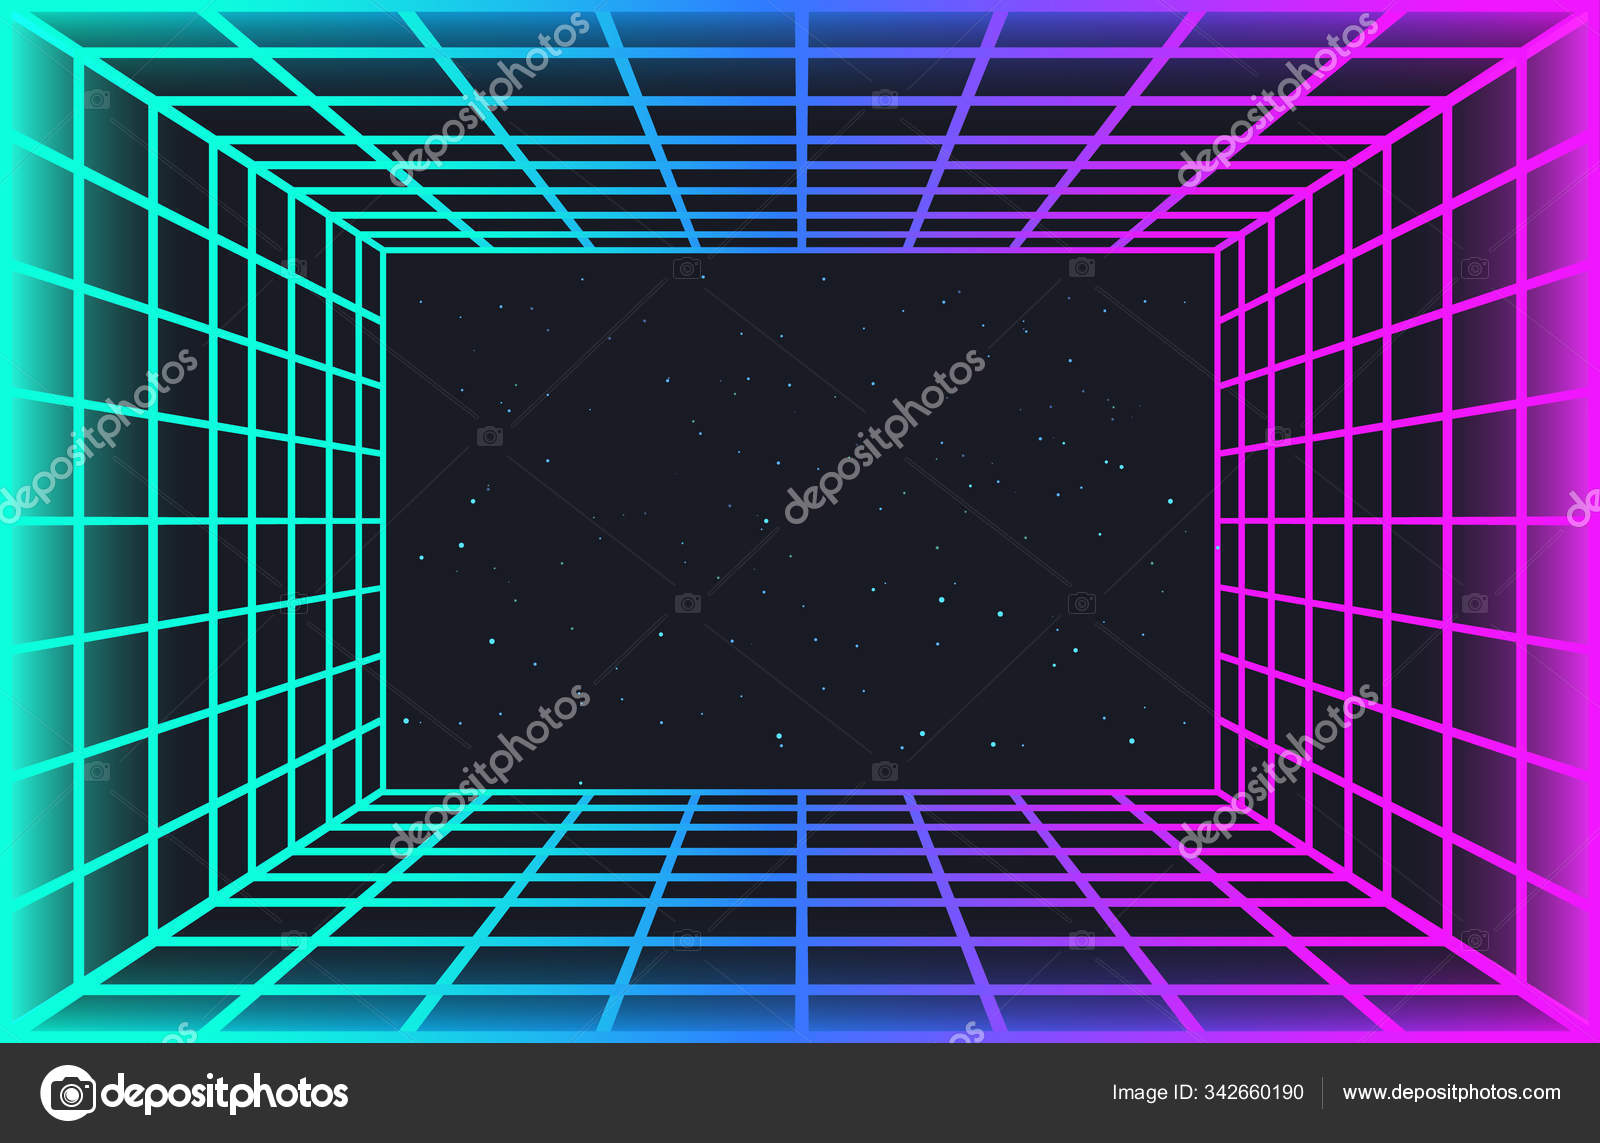 Vaporwave Retro Futuristic Background Abstract Laser Grid Tunnel